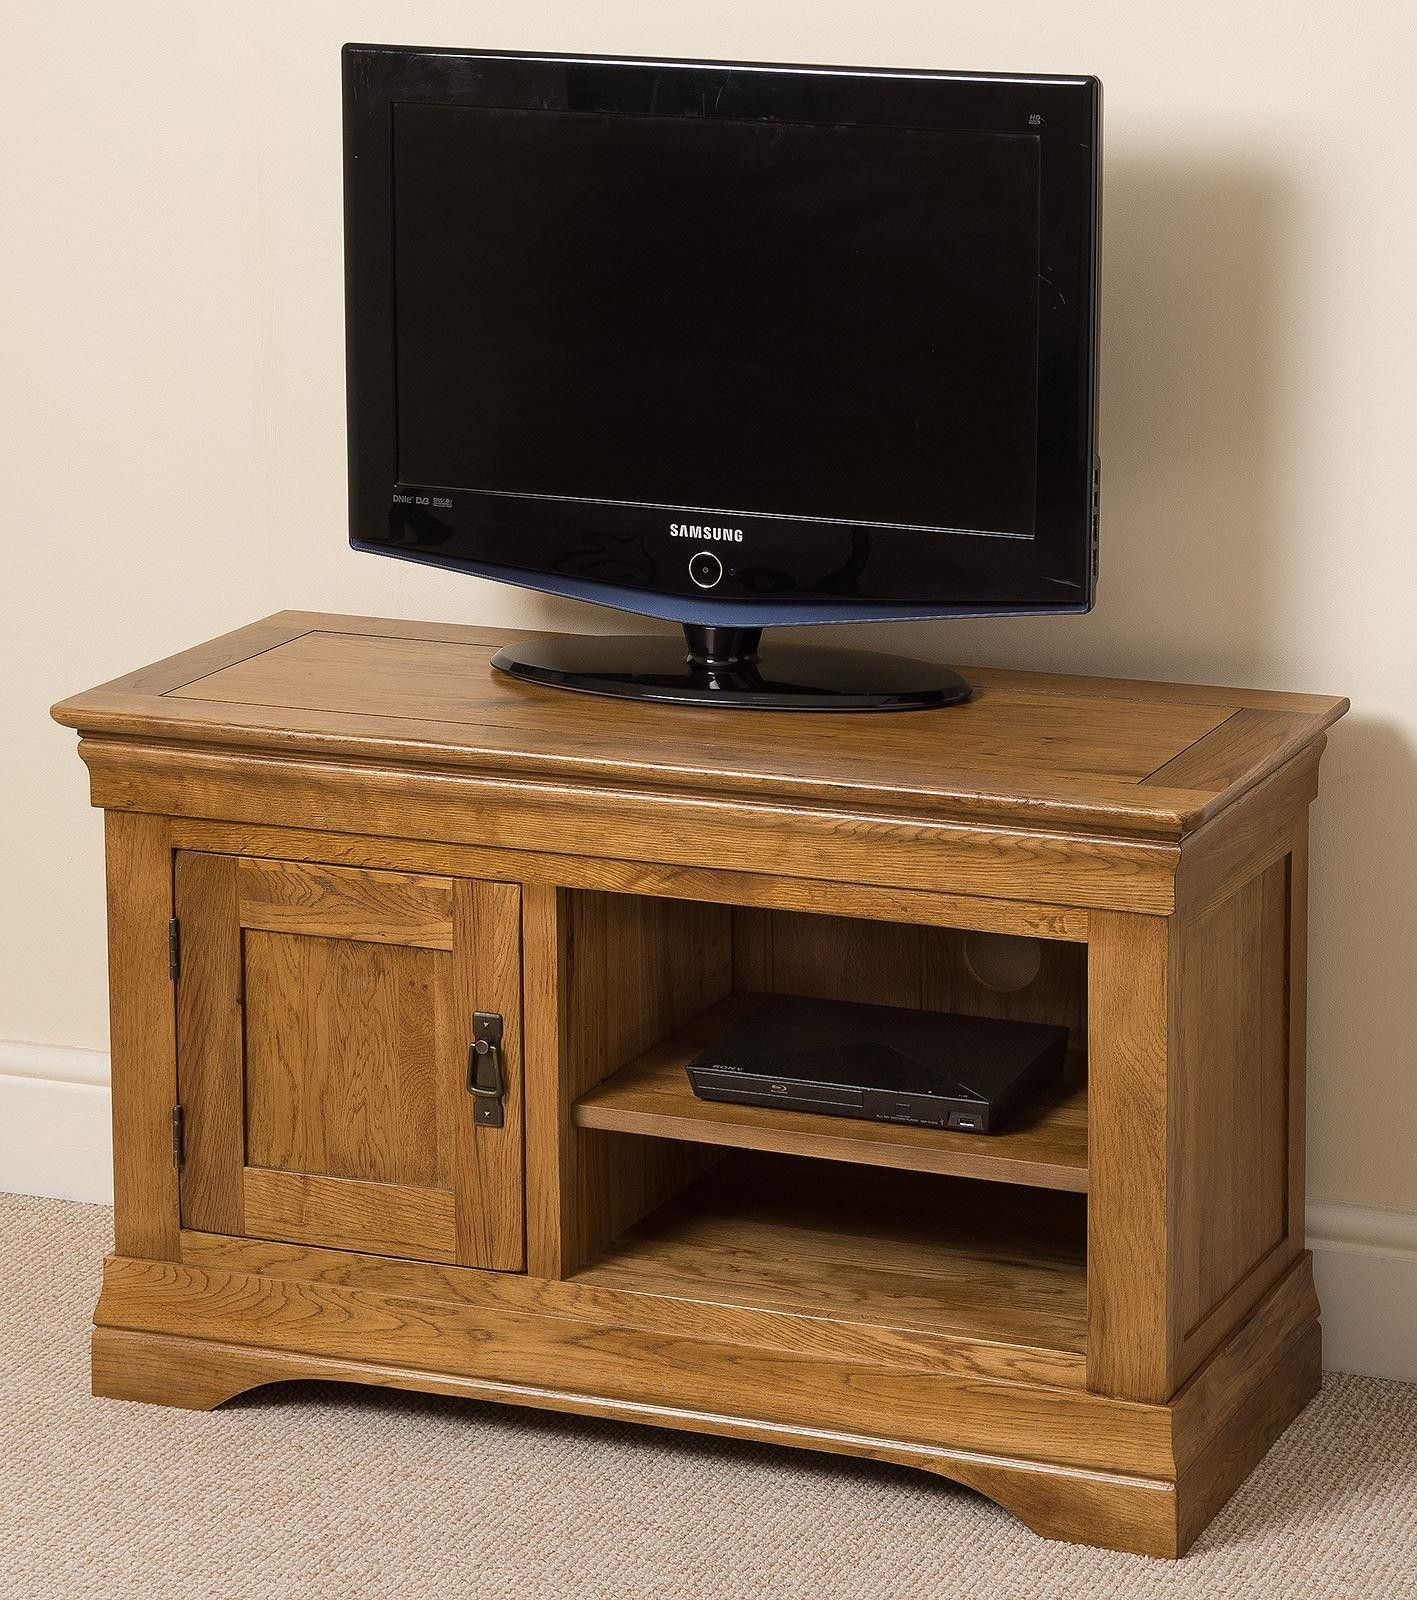 Alton oak corner cabinet oak furniture solutions - French Chateau Rustic Solid Oak Small Tv Cabinet Crafted By Skilled Joiners From 100 Solid